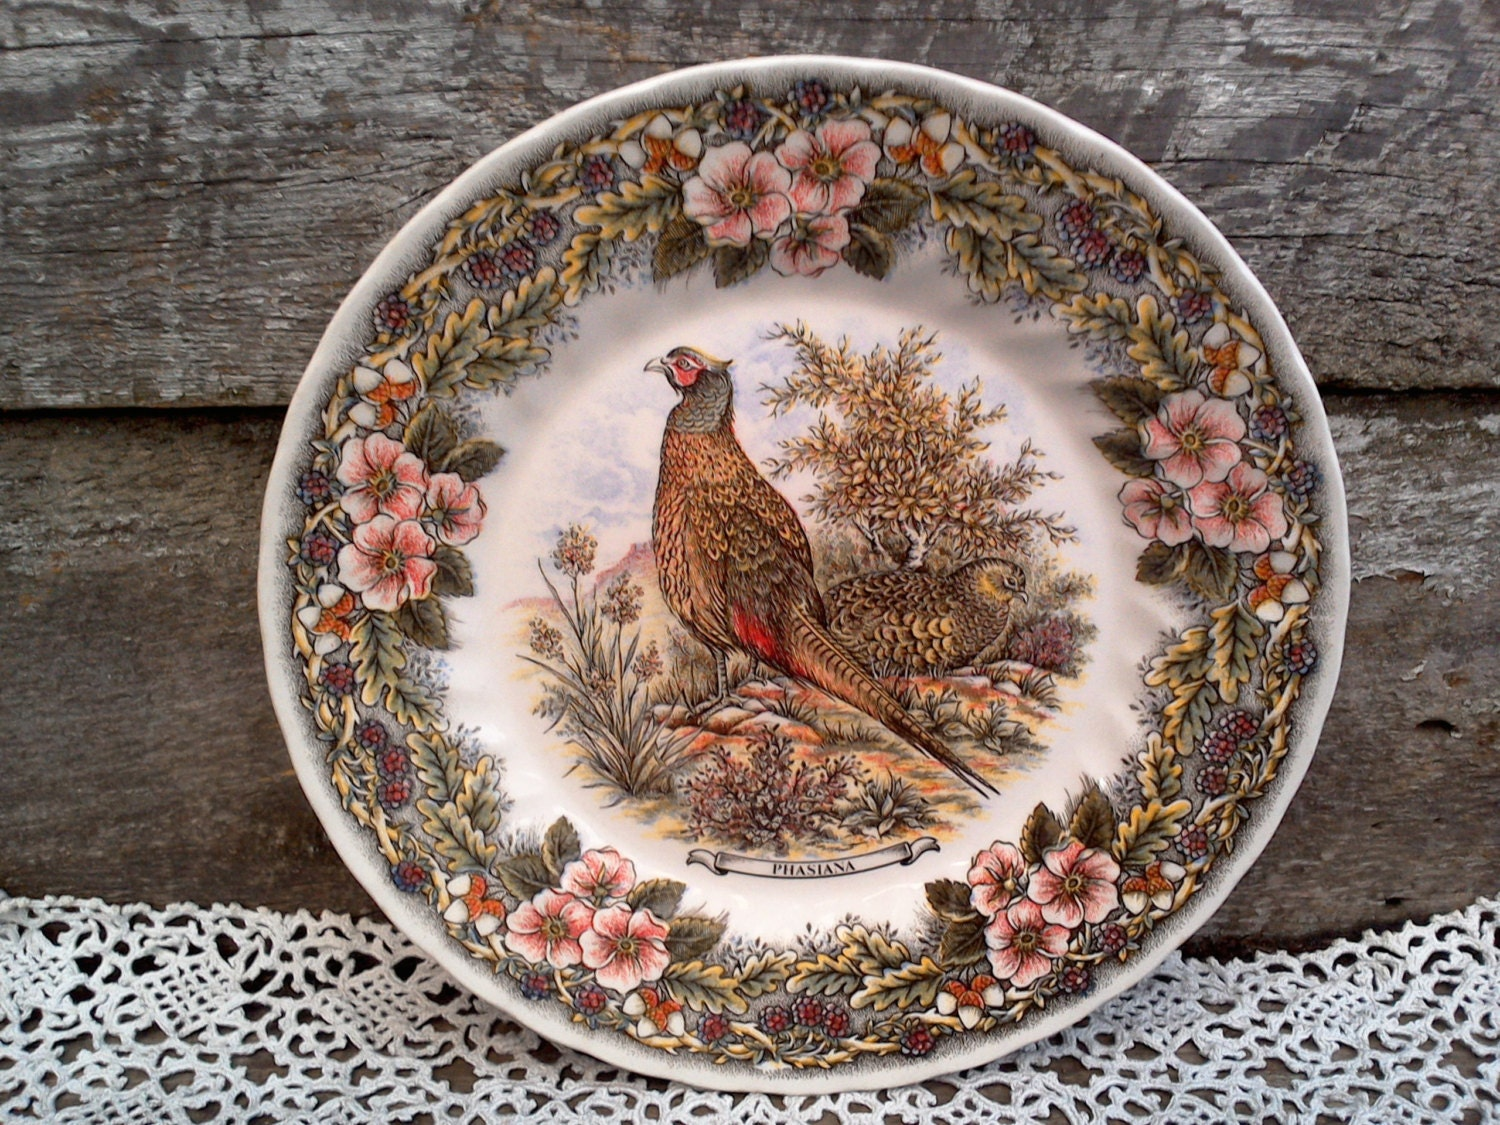 Pheasant Or Bird Plate Phasiana Churchill